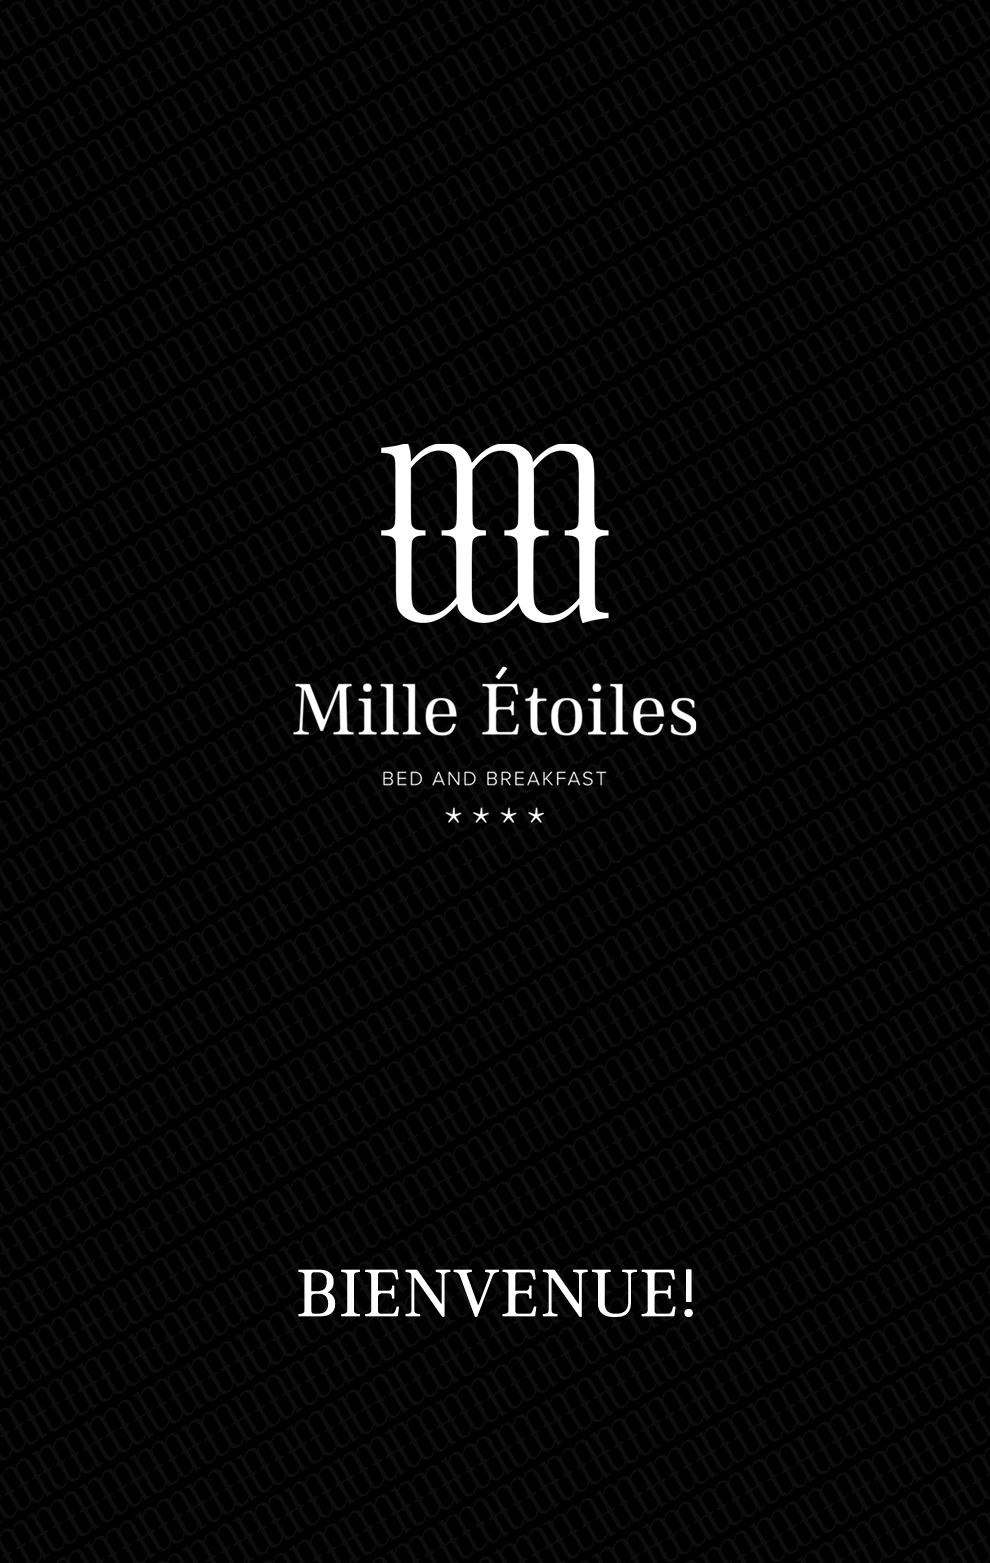 mille-etoiles-home-over-ons-FR